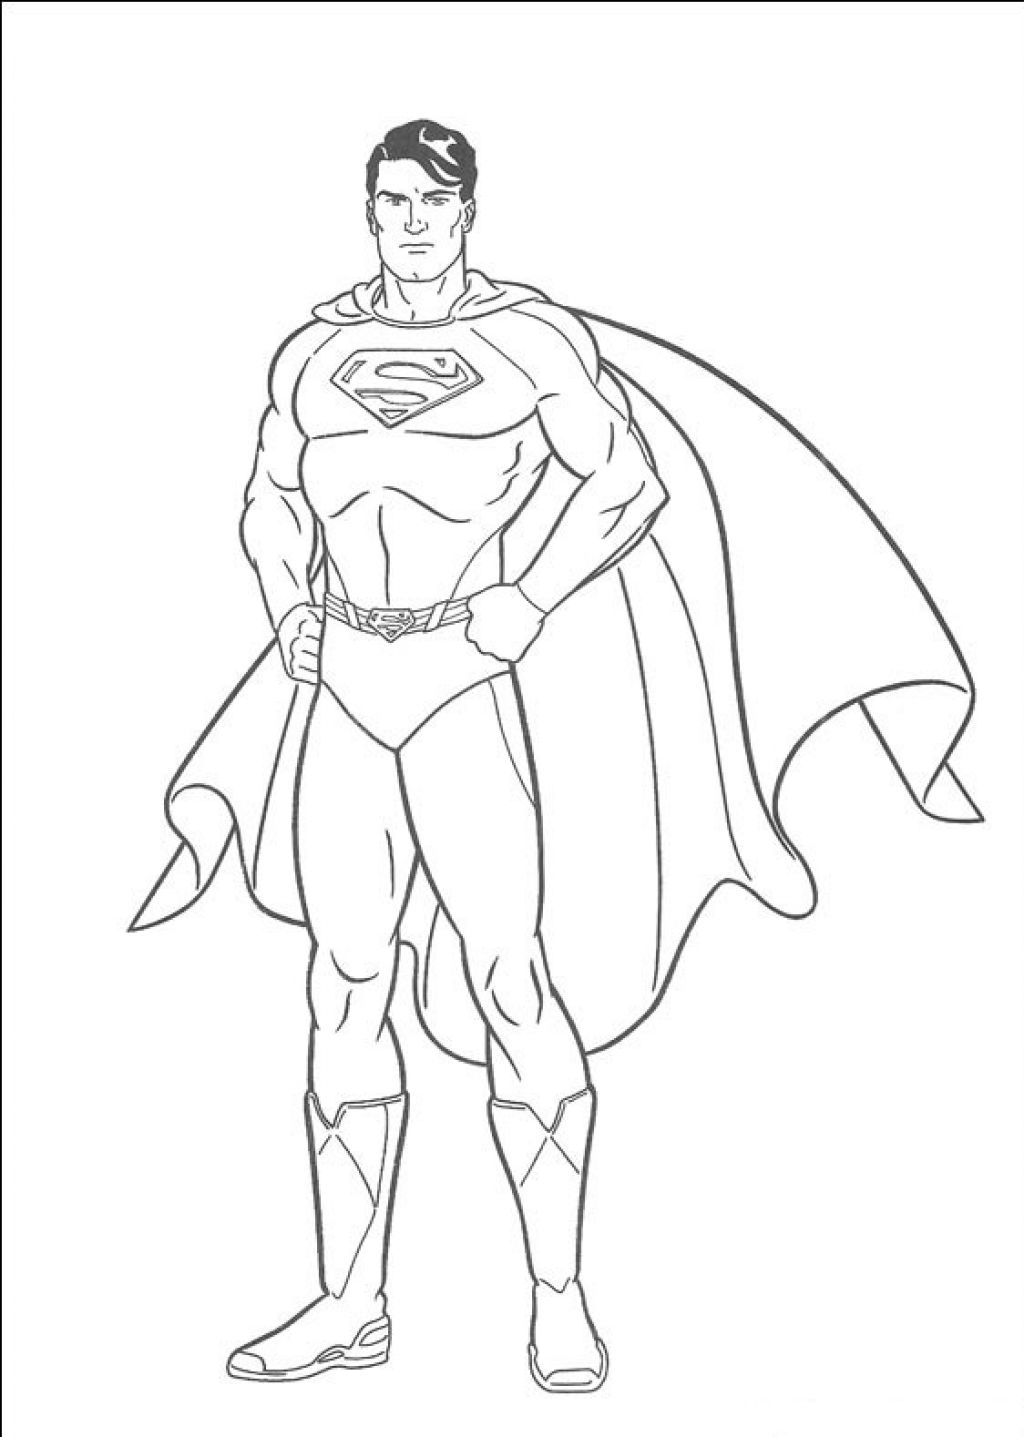 superman cartoon pictures for colouring coloring picture of a superman for colouring cartoon superman pictures